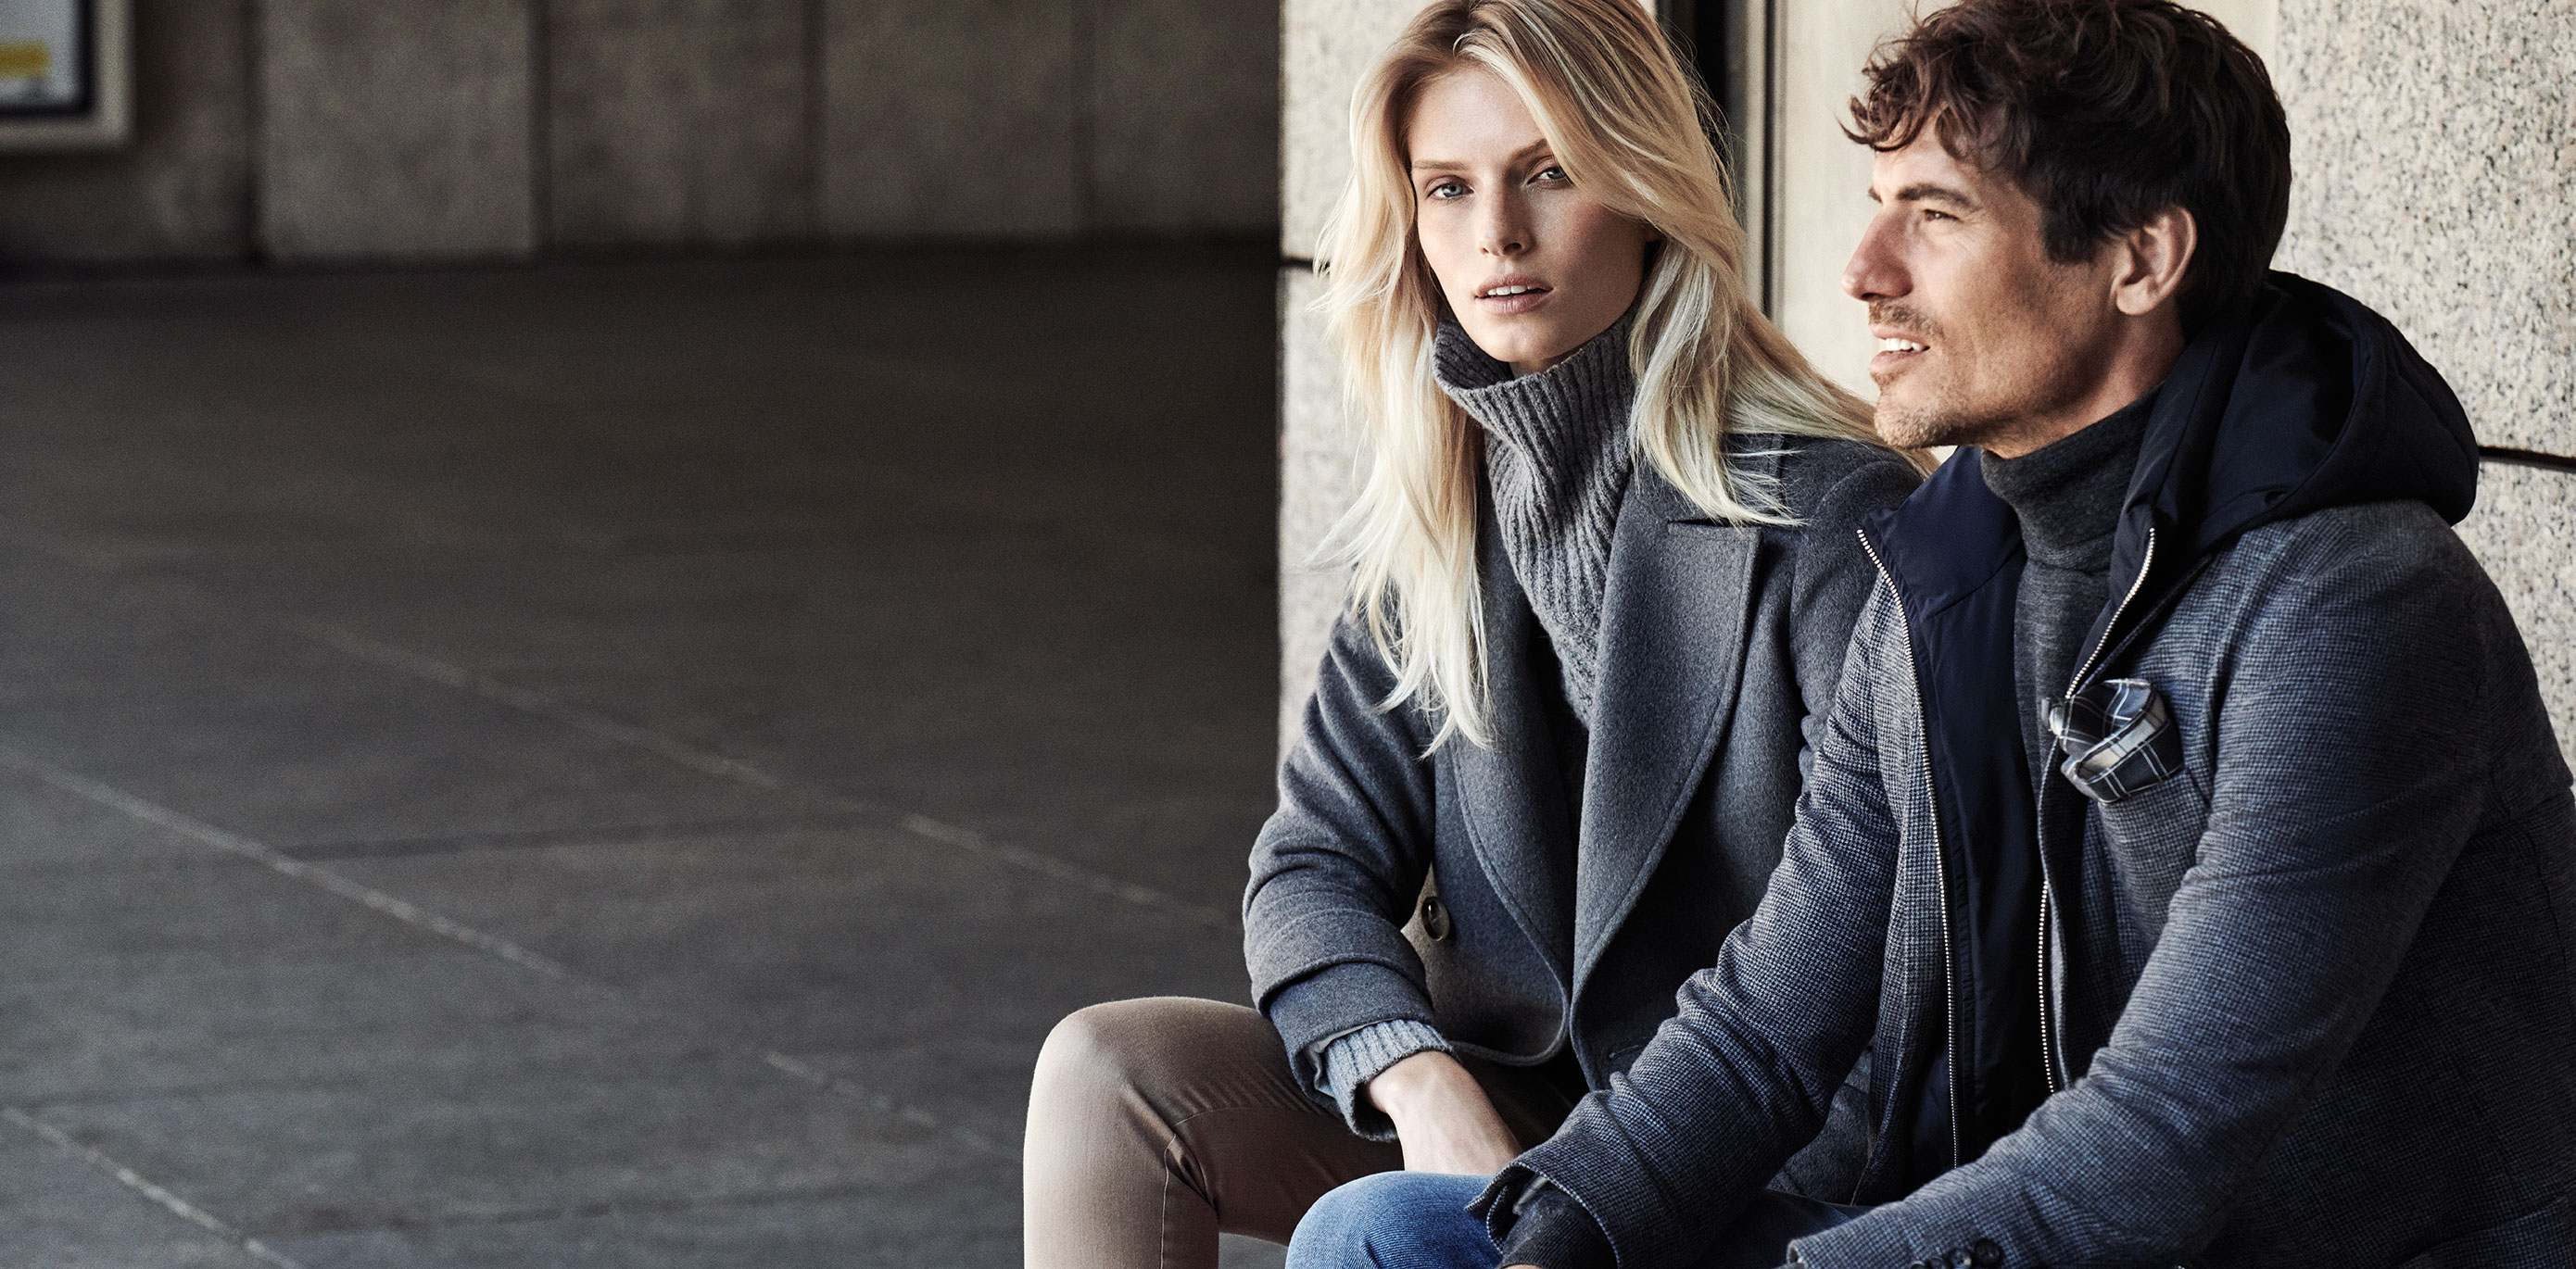 discover the fall winter men & women collection from sacoor brothers.